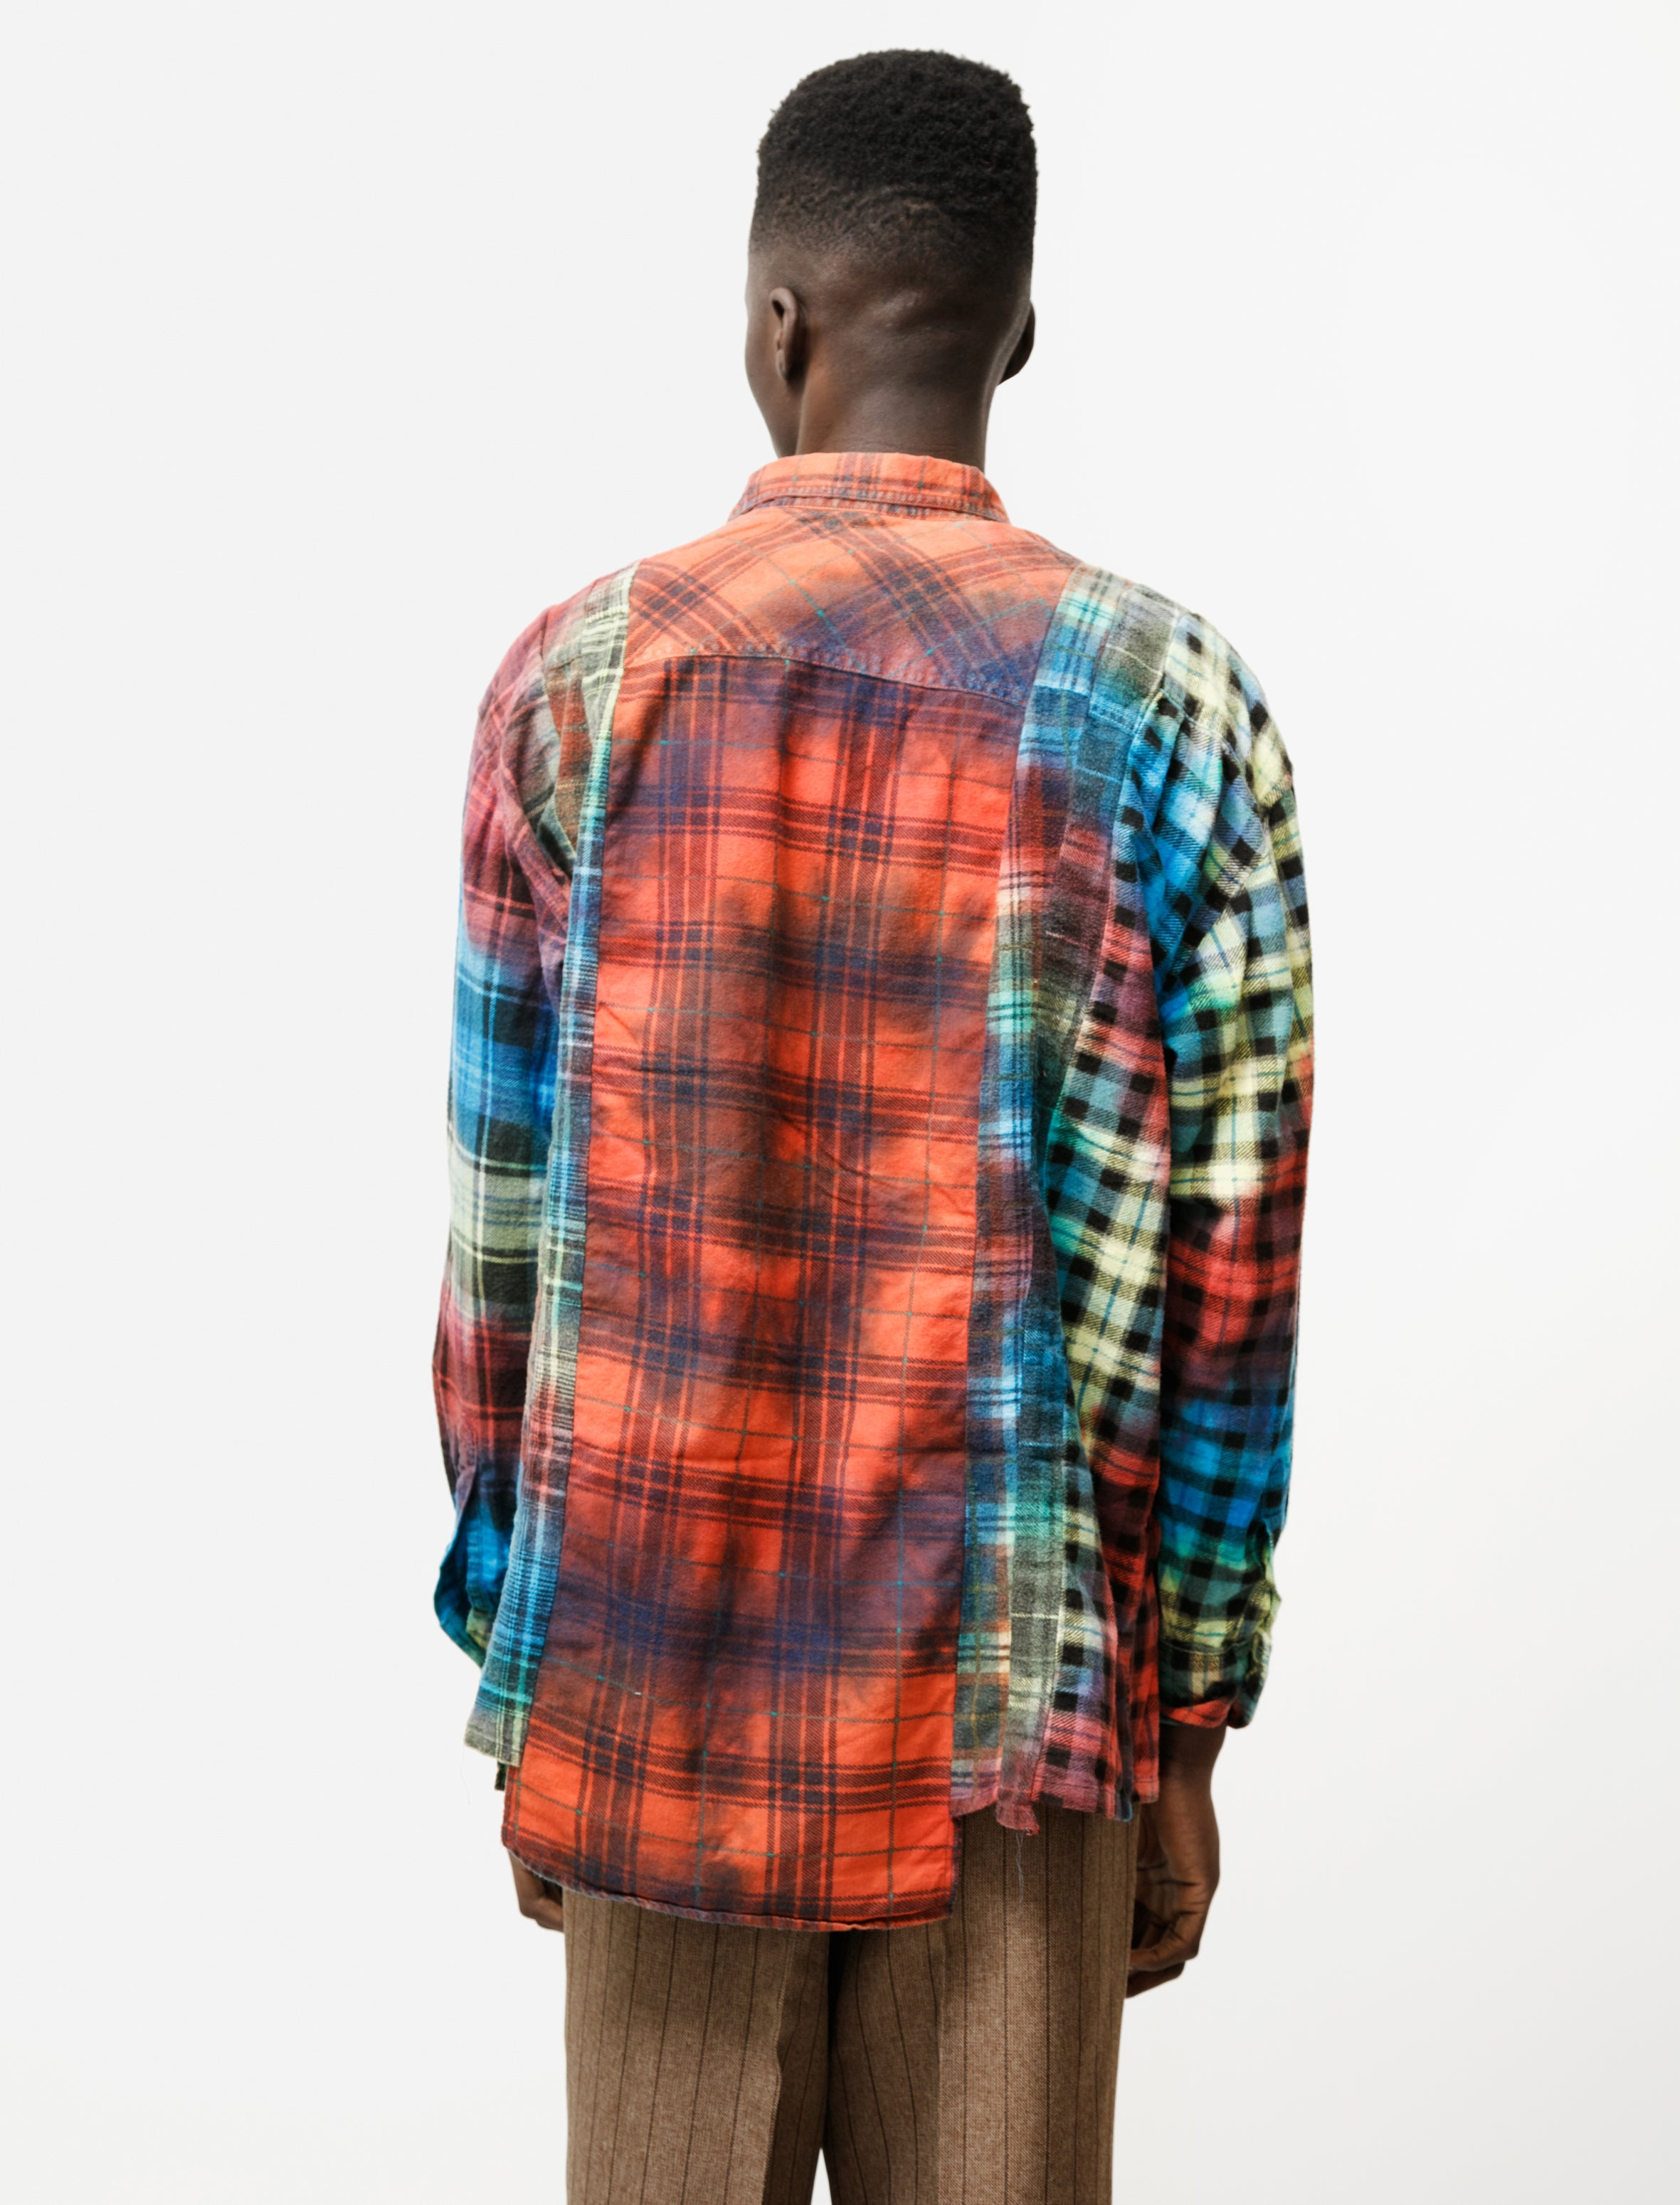 Needles Rebuild by Needles Flannel 7 Cuts Tie Dye